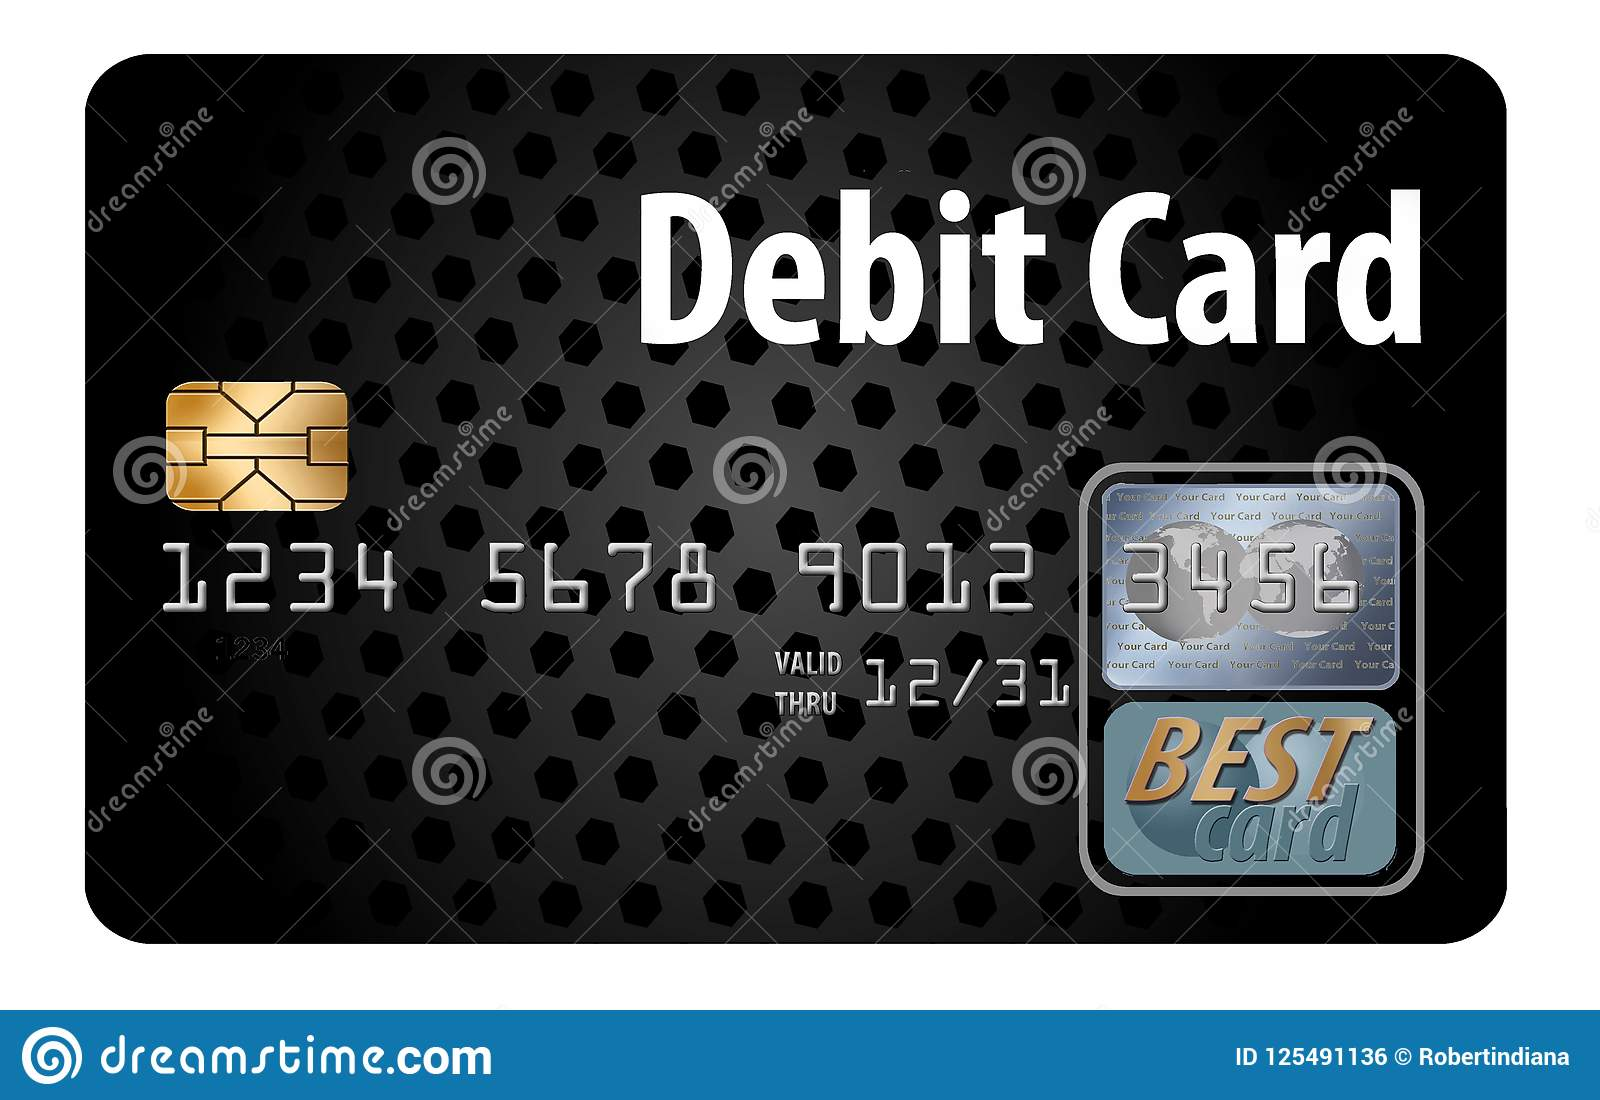 Here is a generic debit card isolated on a white background.